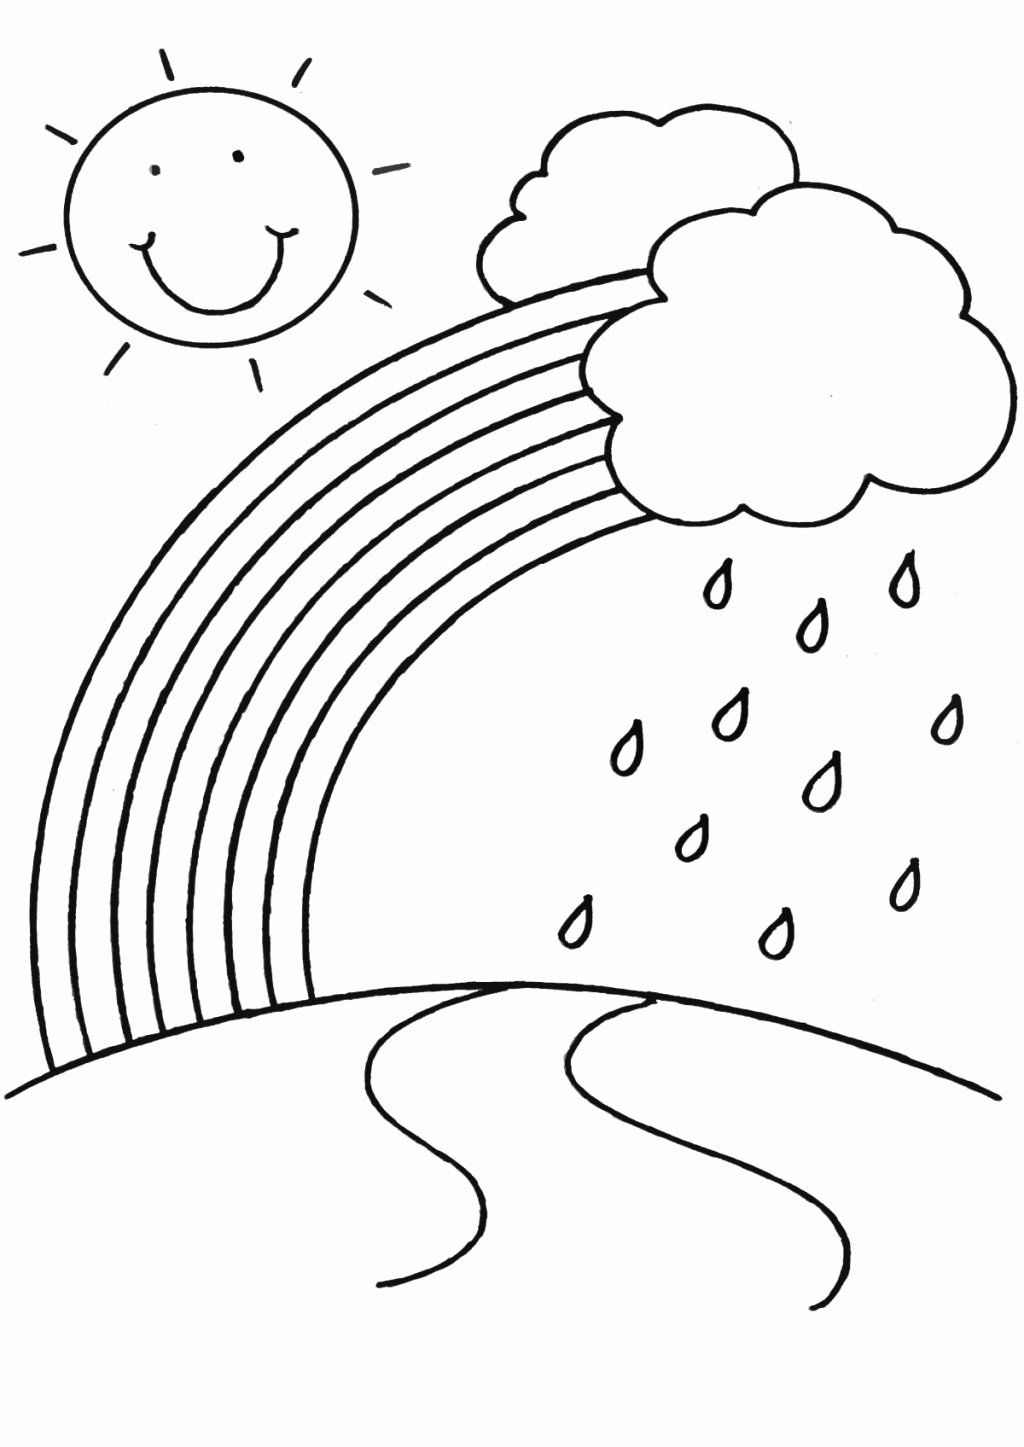 Coloring Activities Pdf Best Of Coloring Pages For Children That Are Interesting And Free Kindergarten Coloring Pages Spring Coloring Pages Free Coloring Pages [ 1447 x 1024 Pixel ]